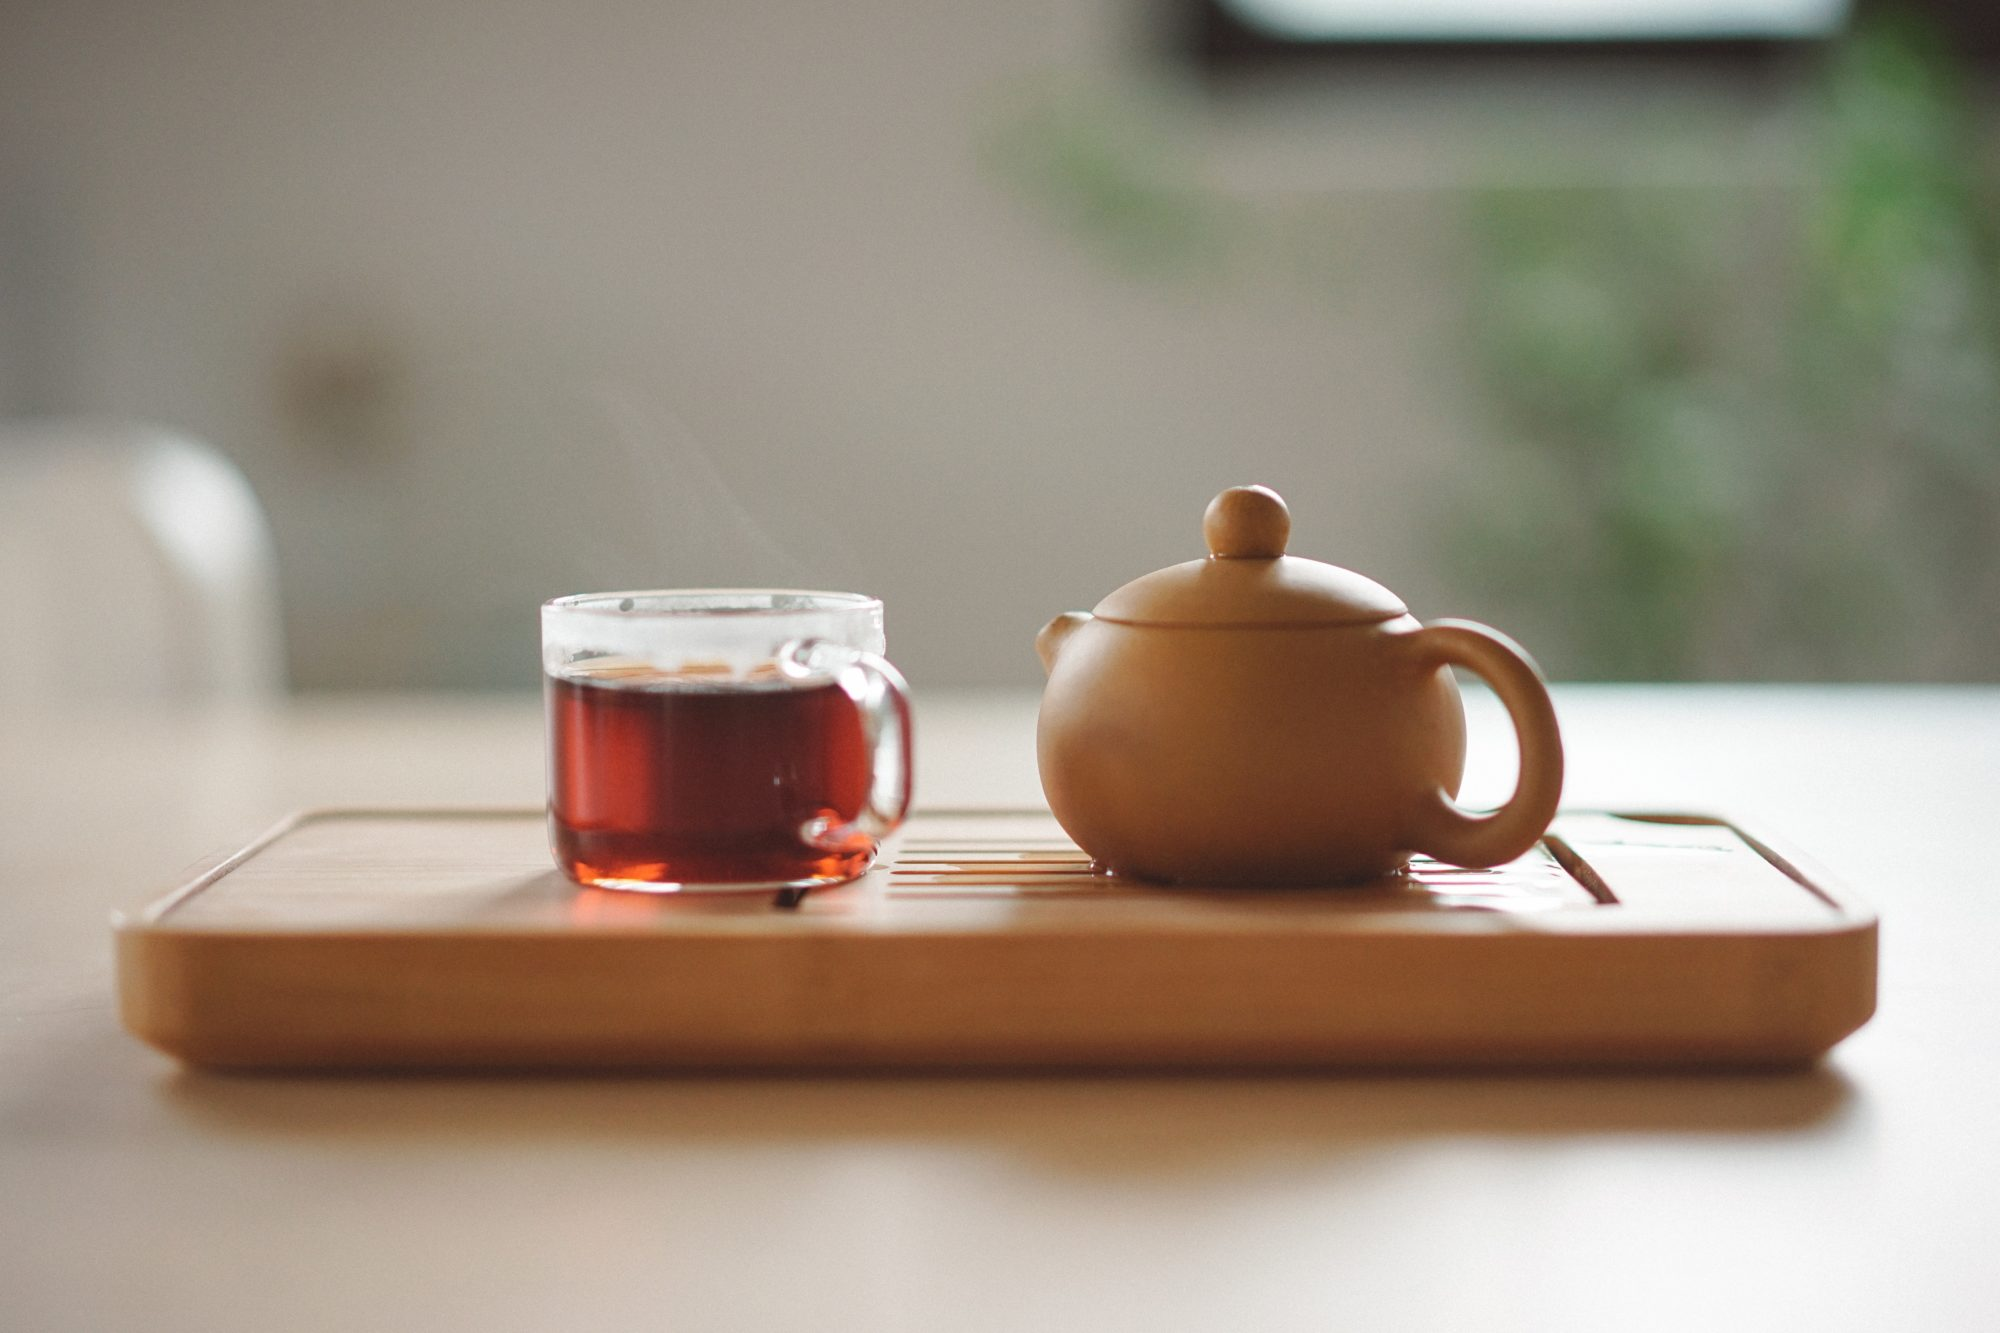 12 Teas To Boost Your Immune System